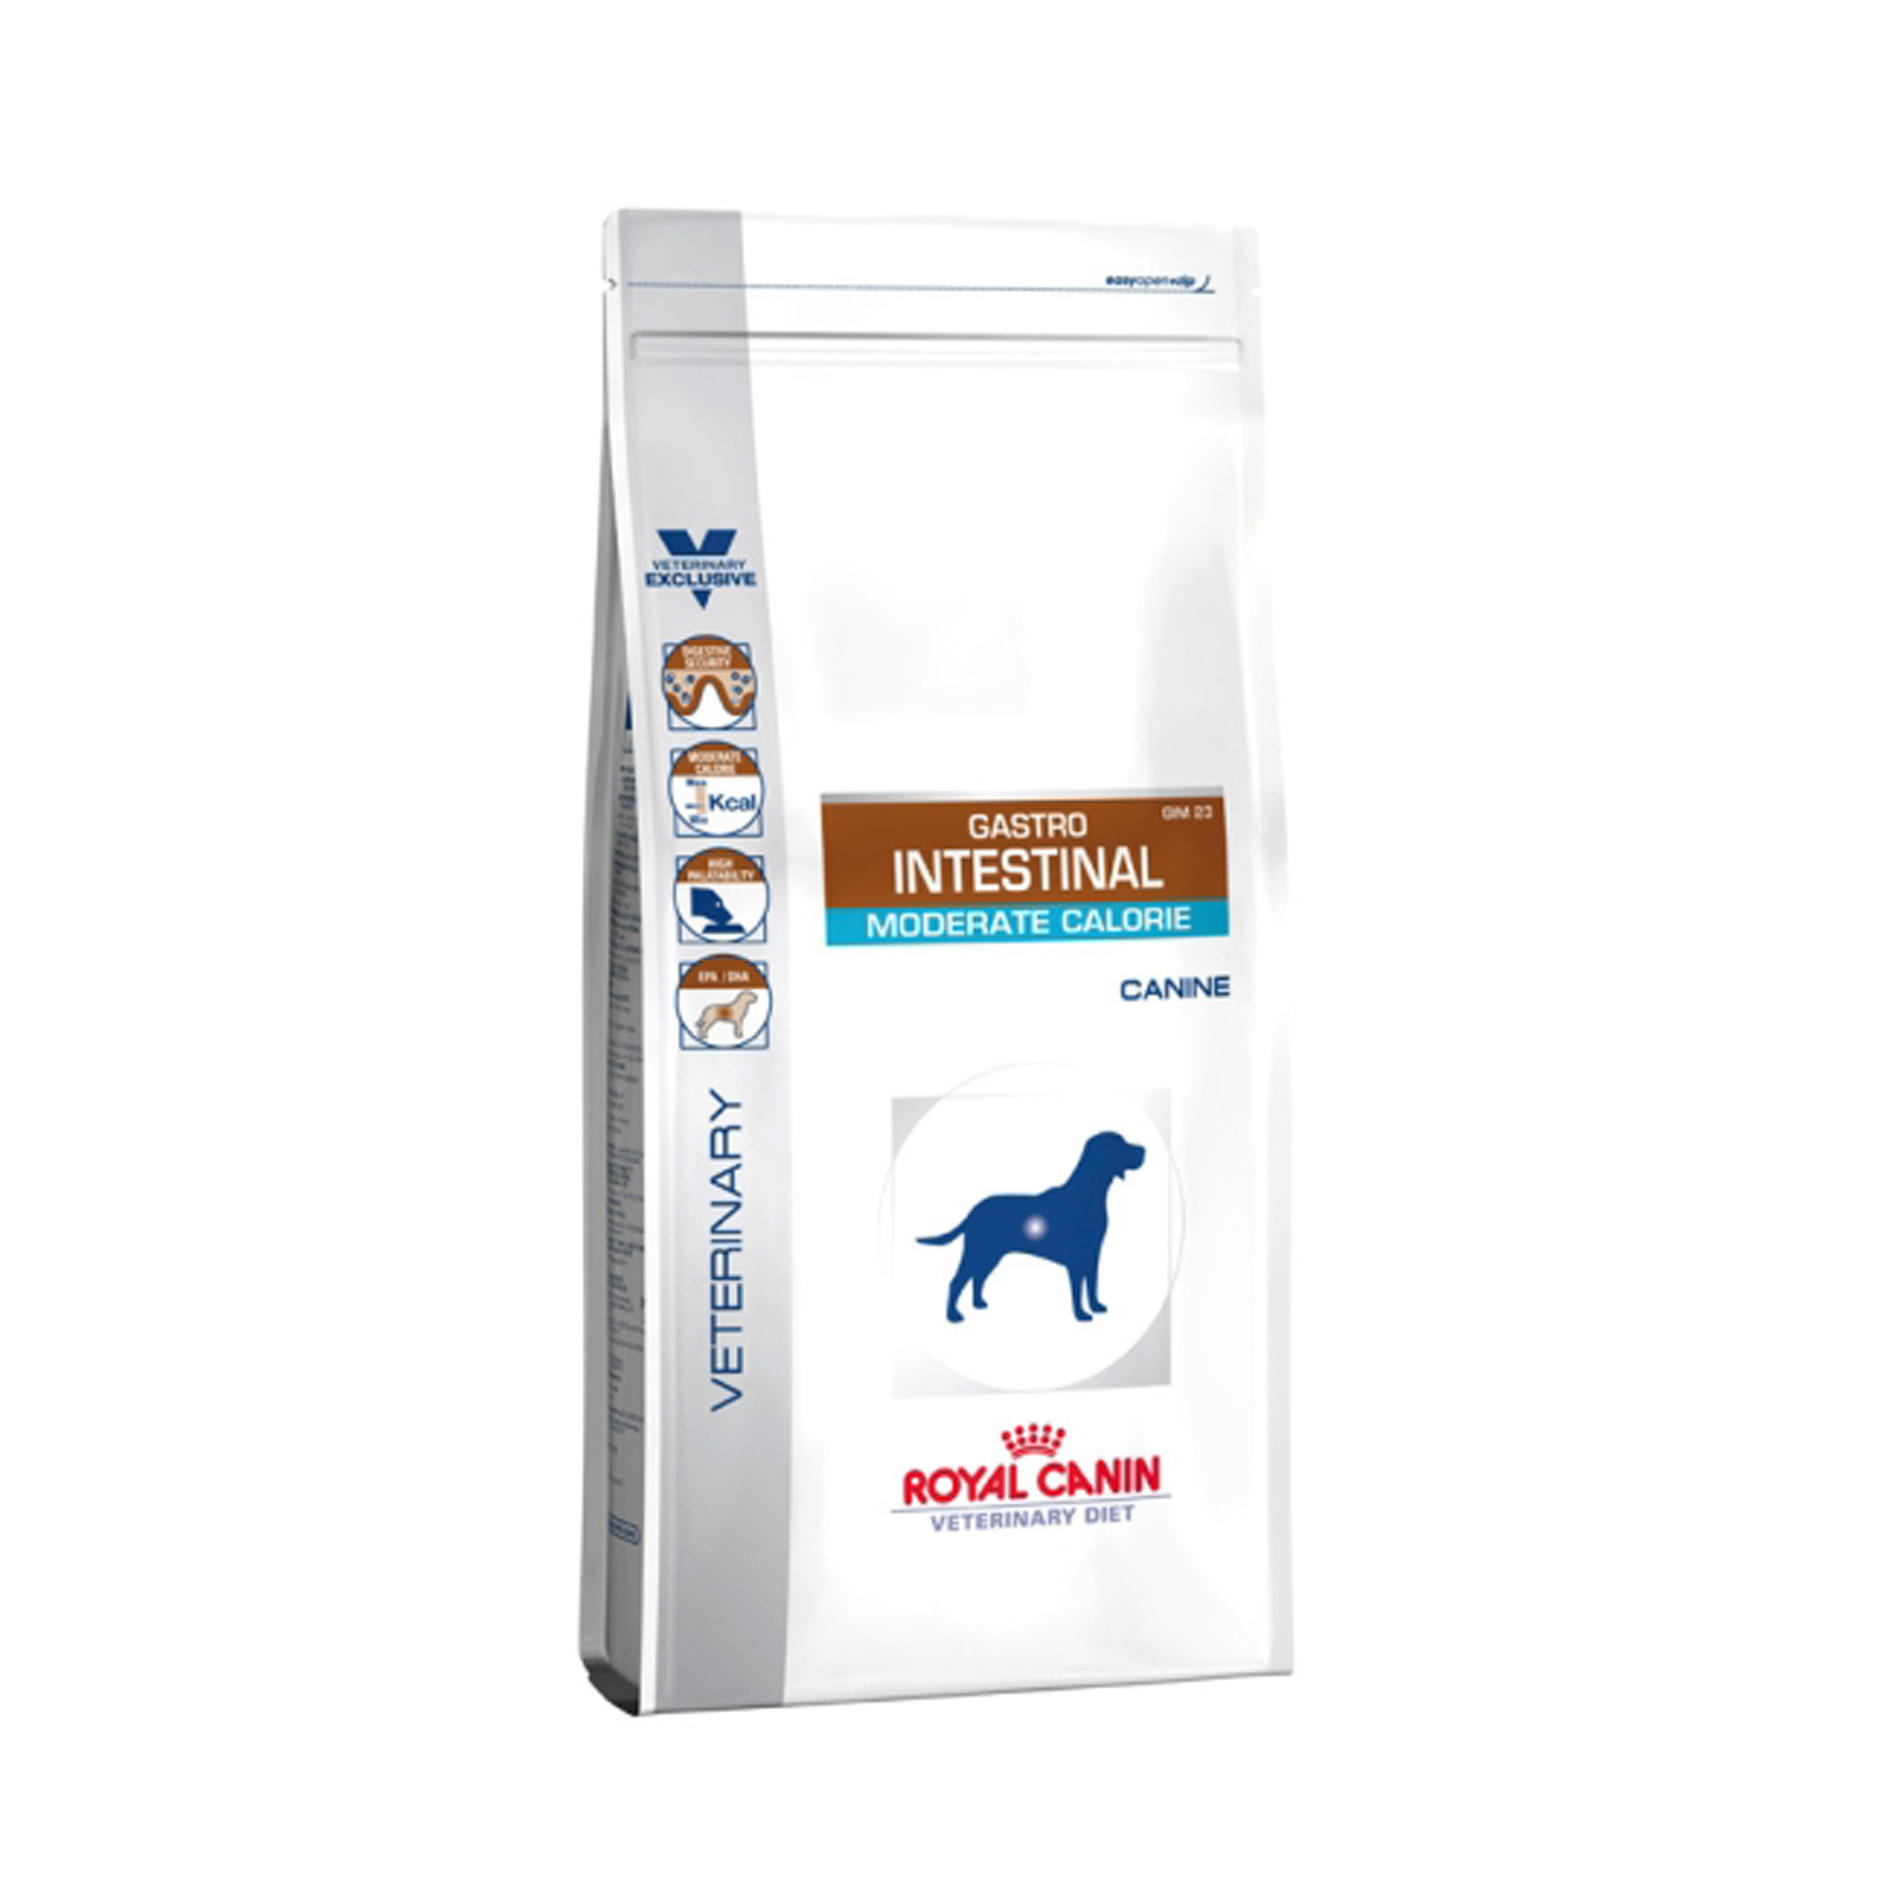 Royal Canin Canine Veterinary Diet Gastro Intestinal Moderate